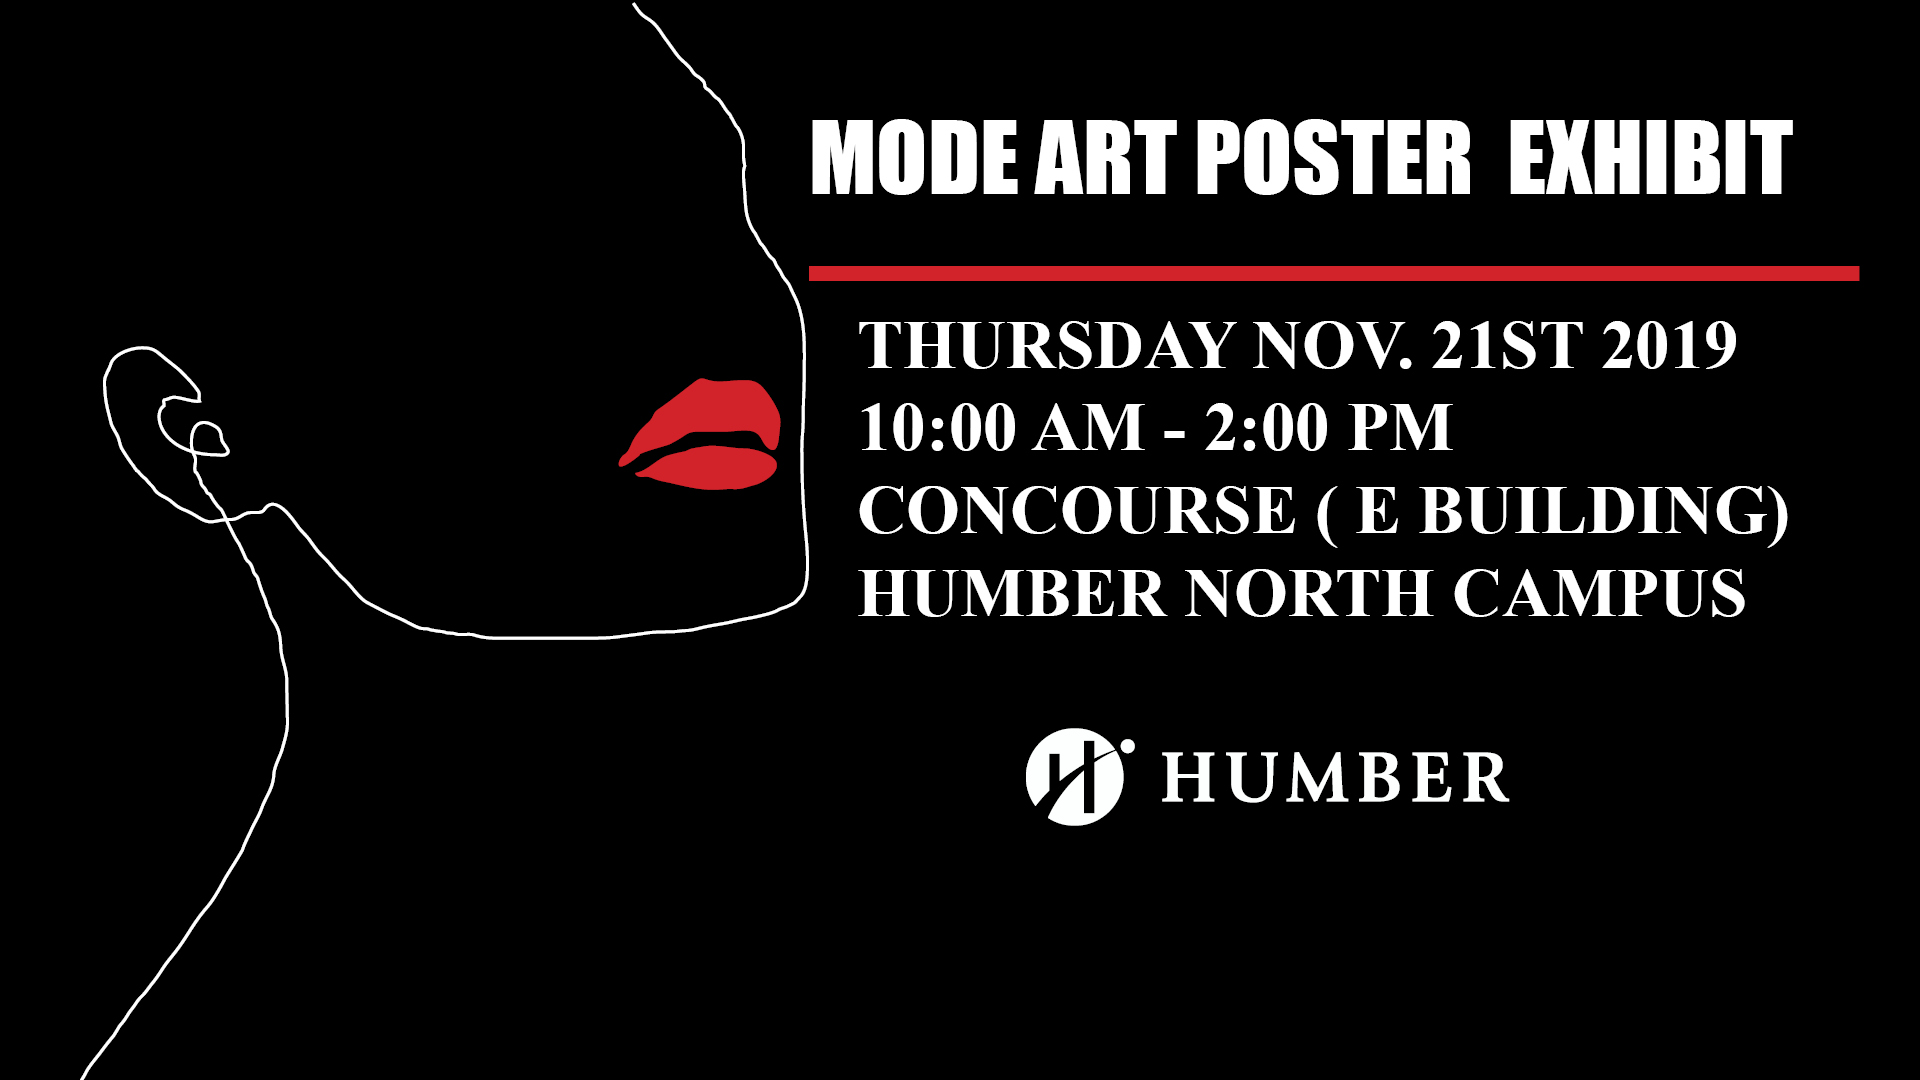 Humber Mode Art Poster Exhibit